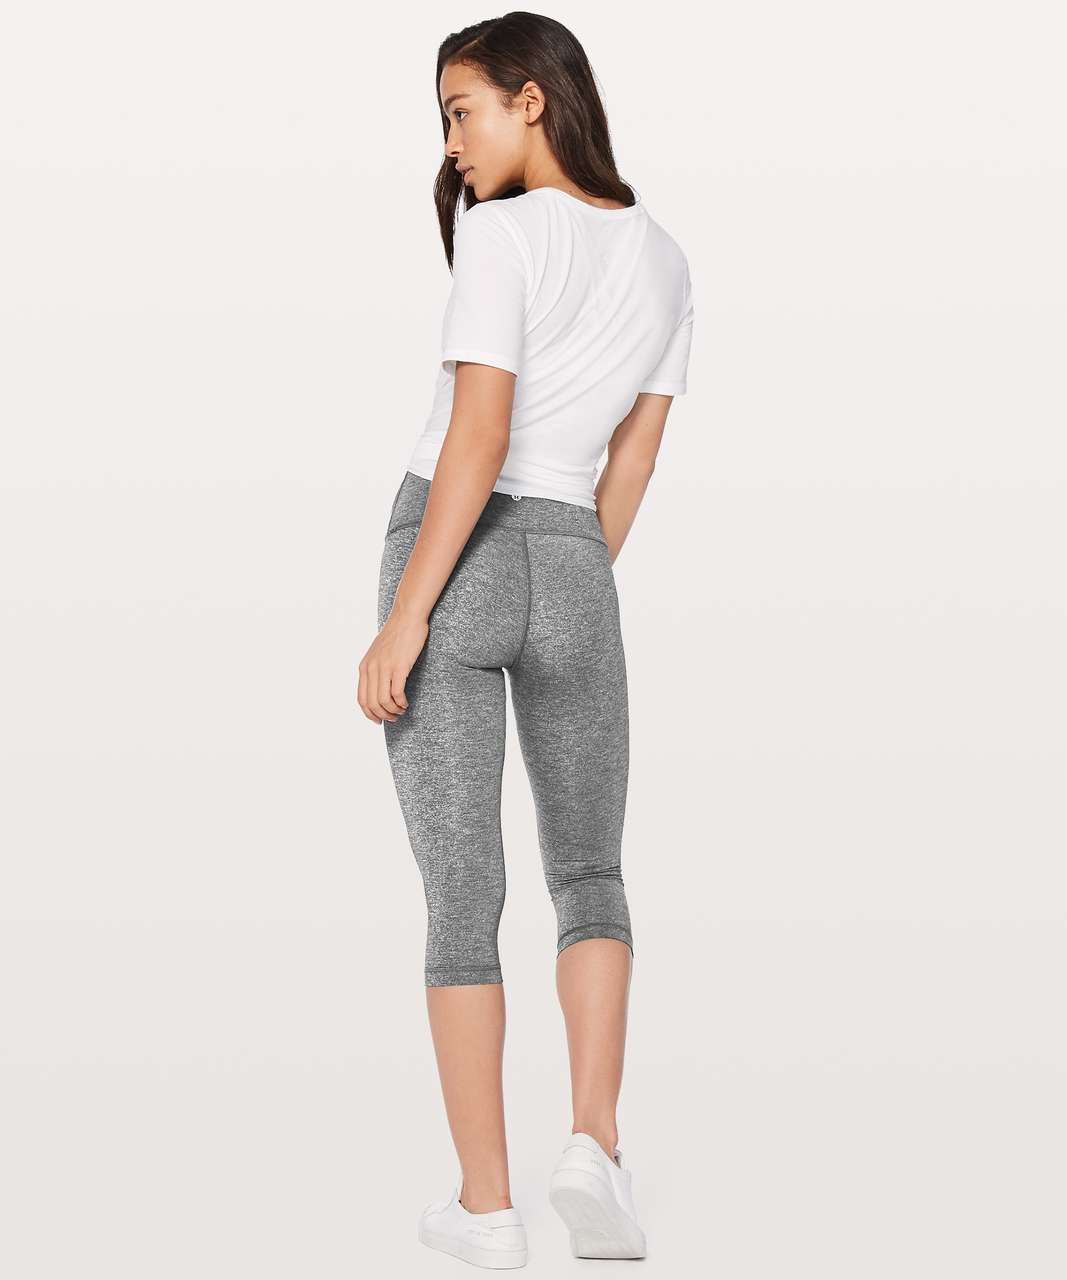 "Lululemon Wunder Under Hi-Rise 1/2 Tight *Luxtreme 17"" - Heathered Black"